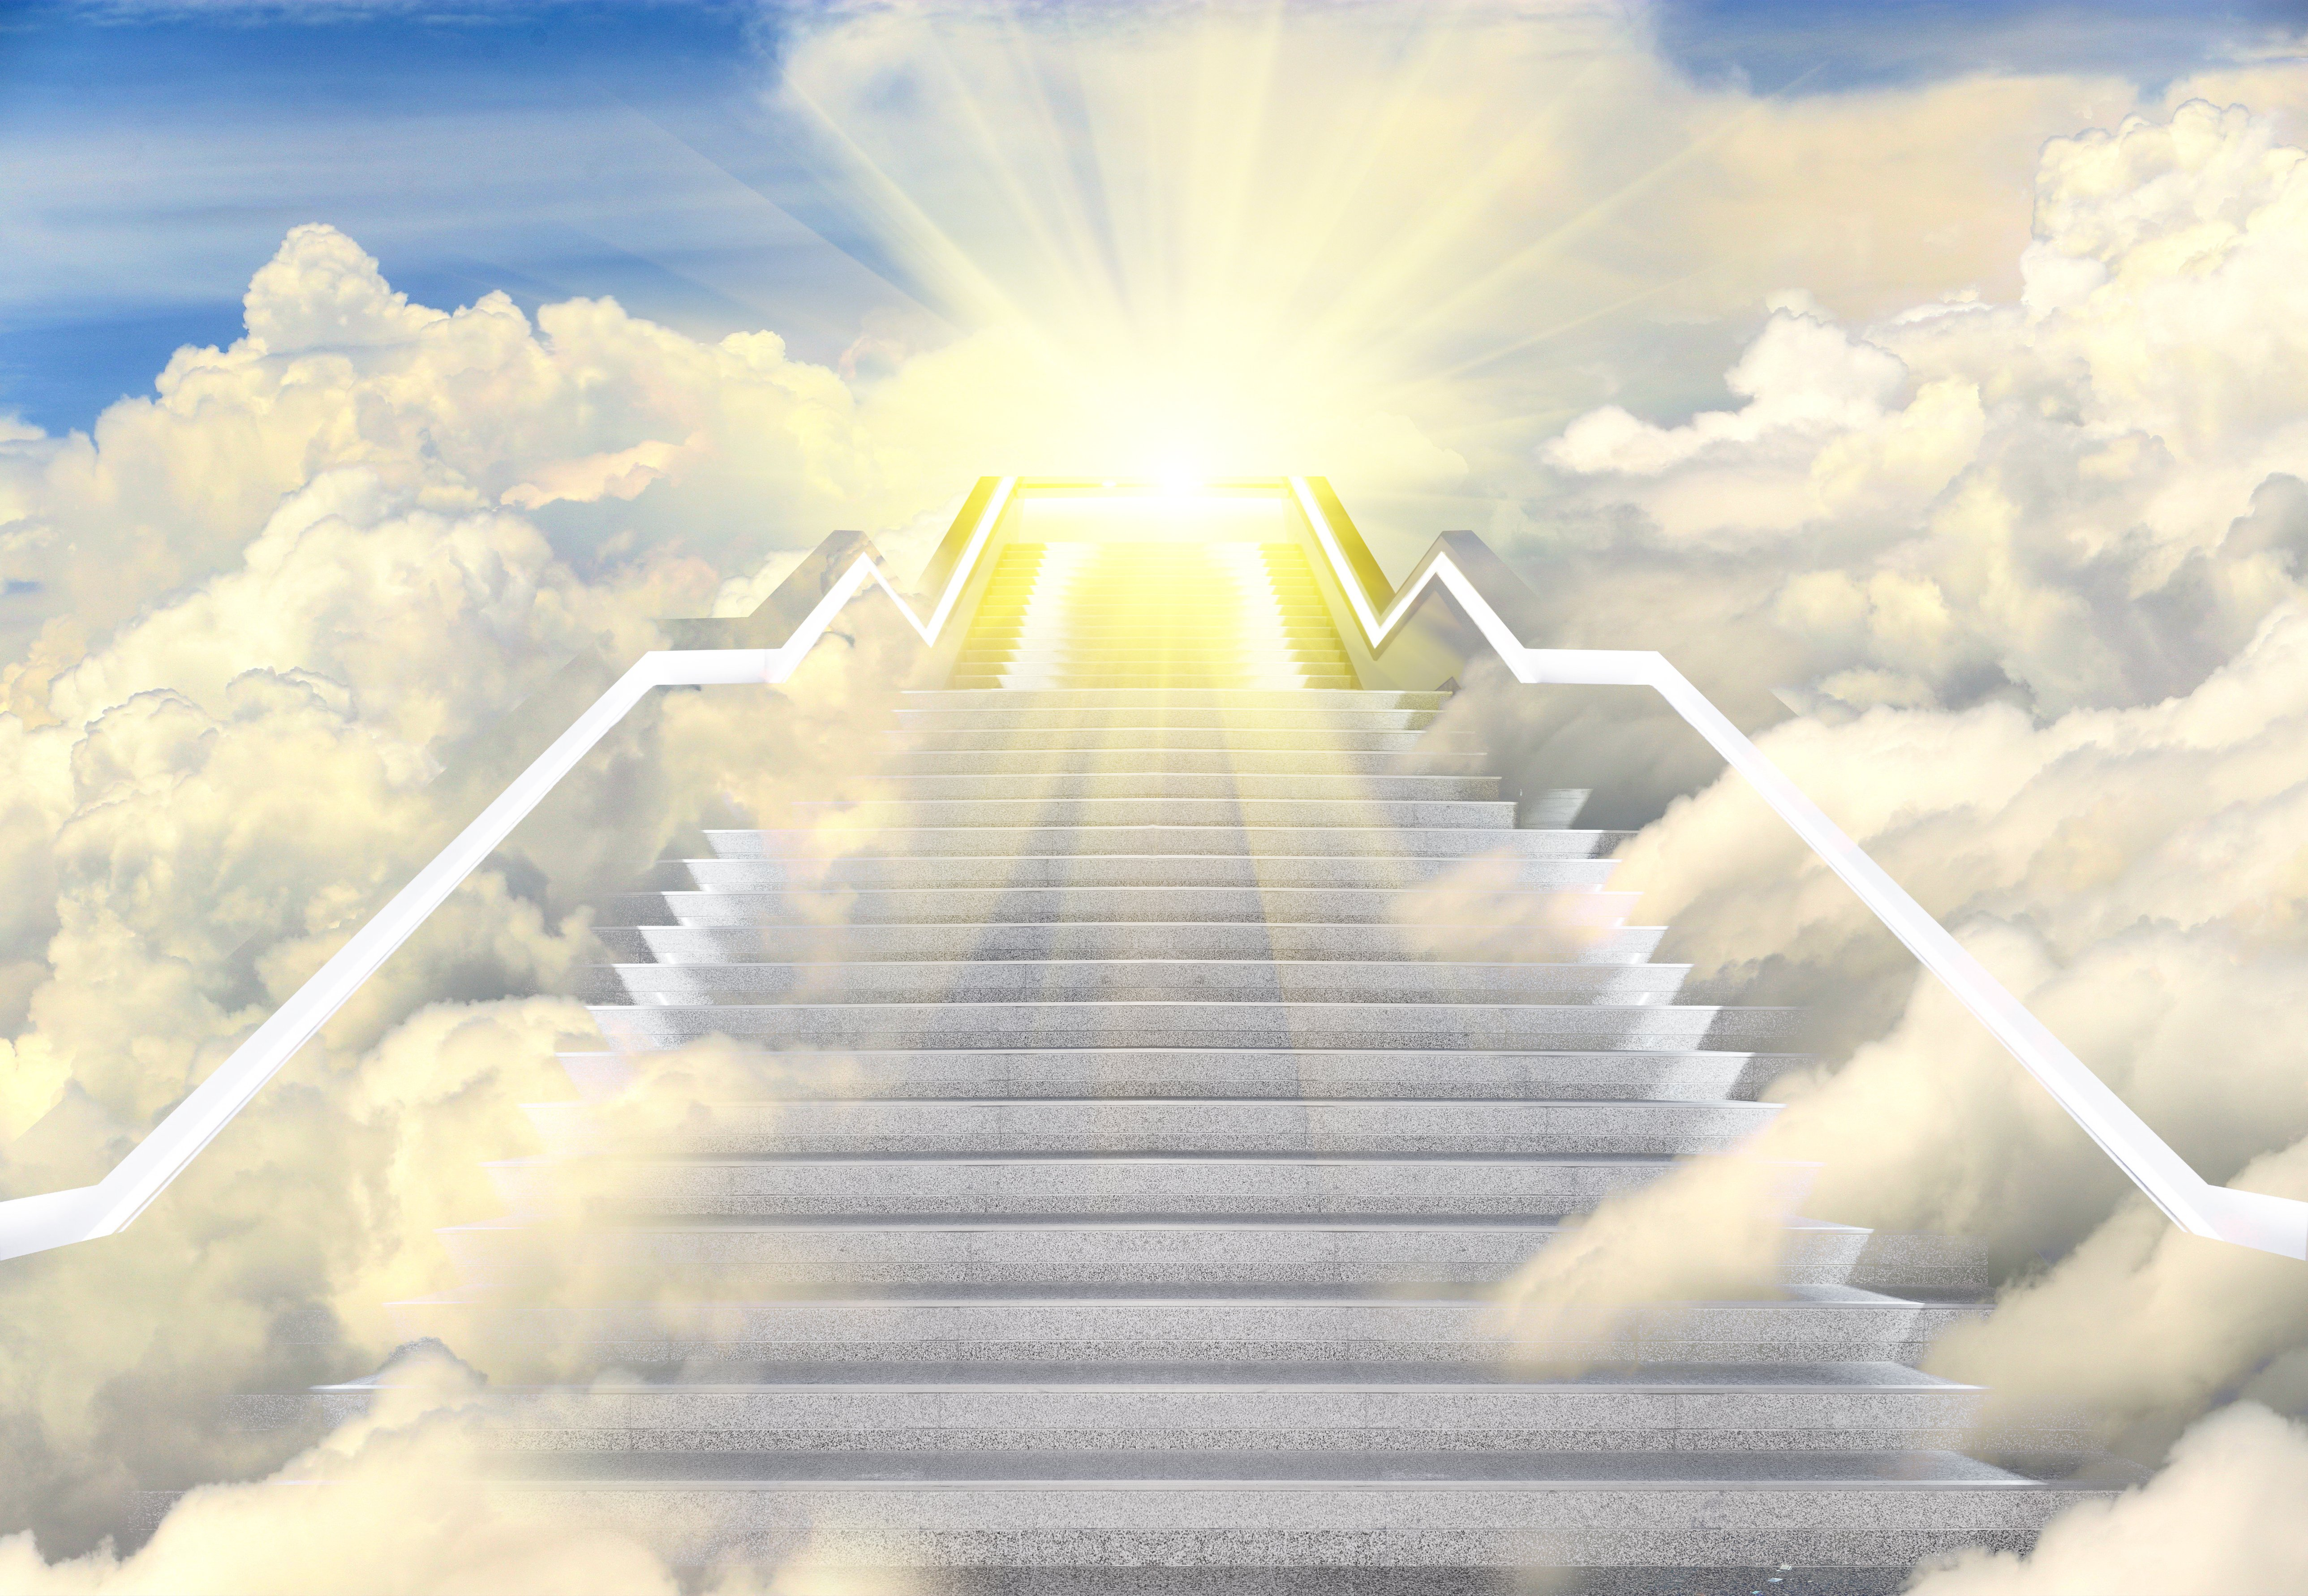 Heaven's gates and stairs | Source: Shutterstock